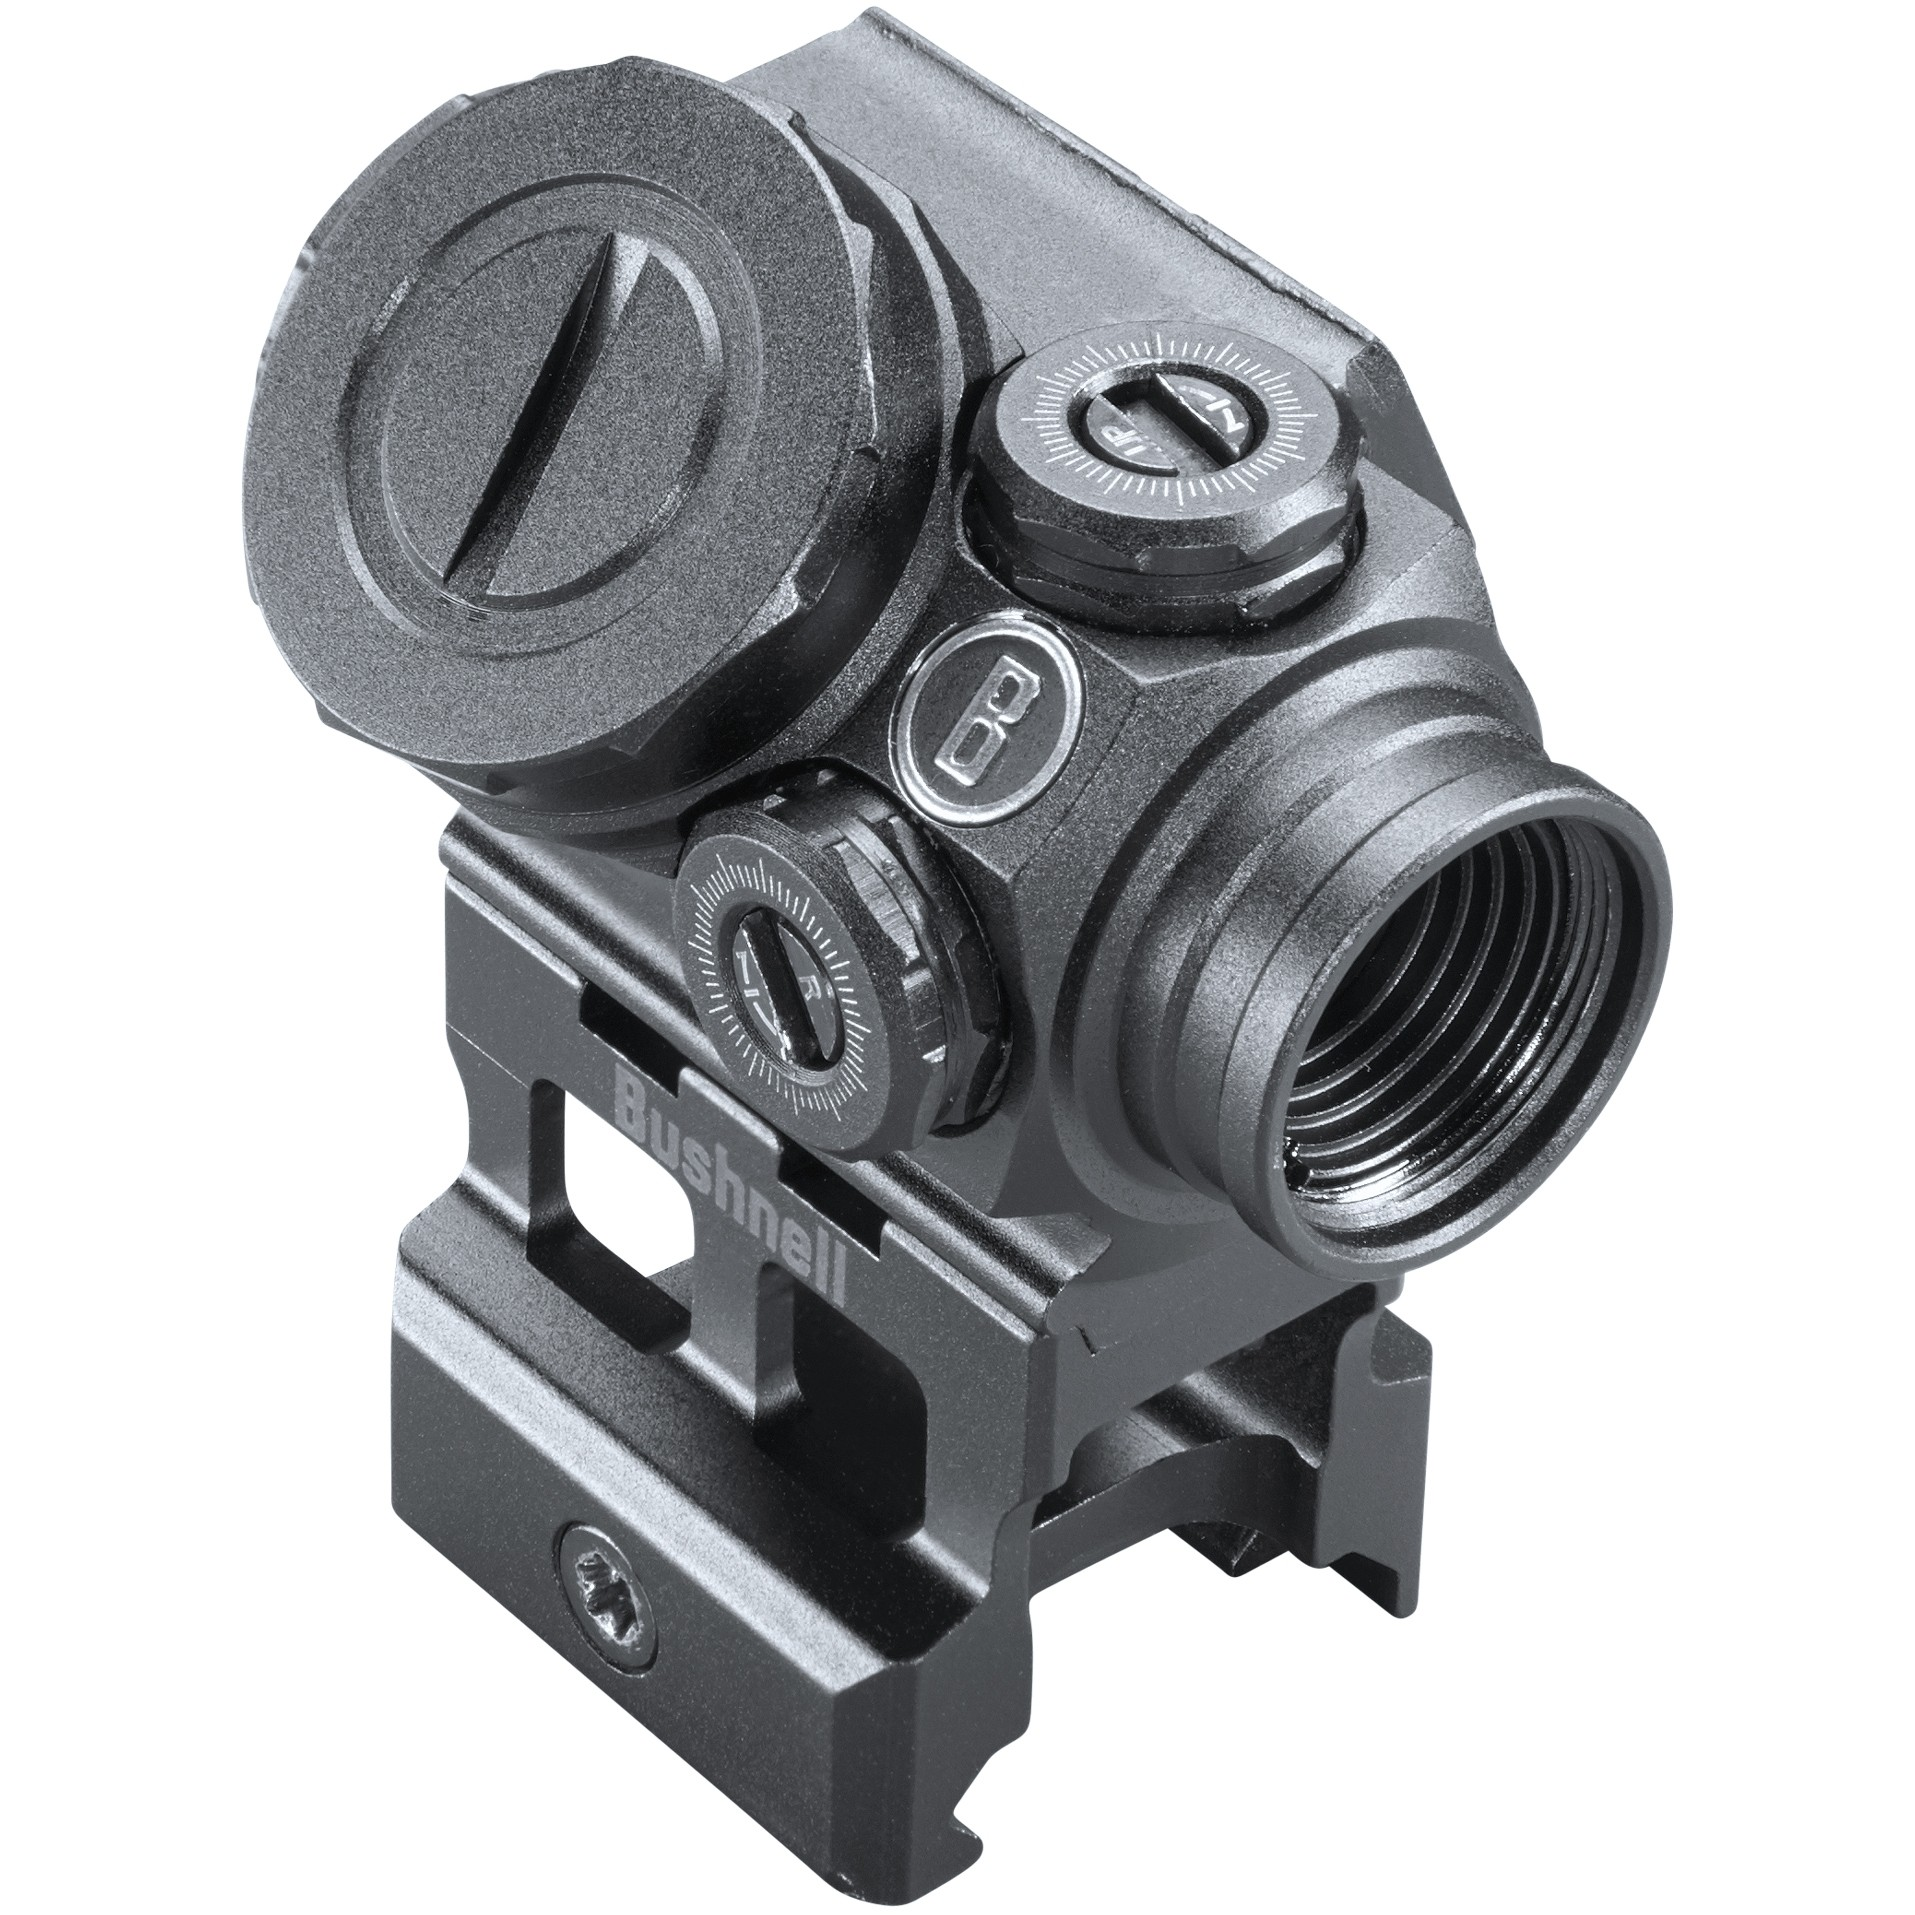 Bushnell 1x11 Tac Optics Lil P Red Dot Sight